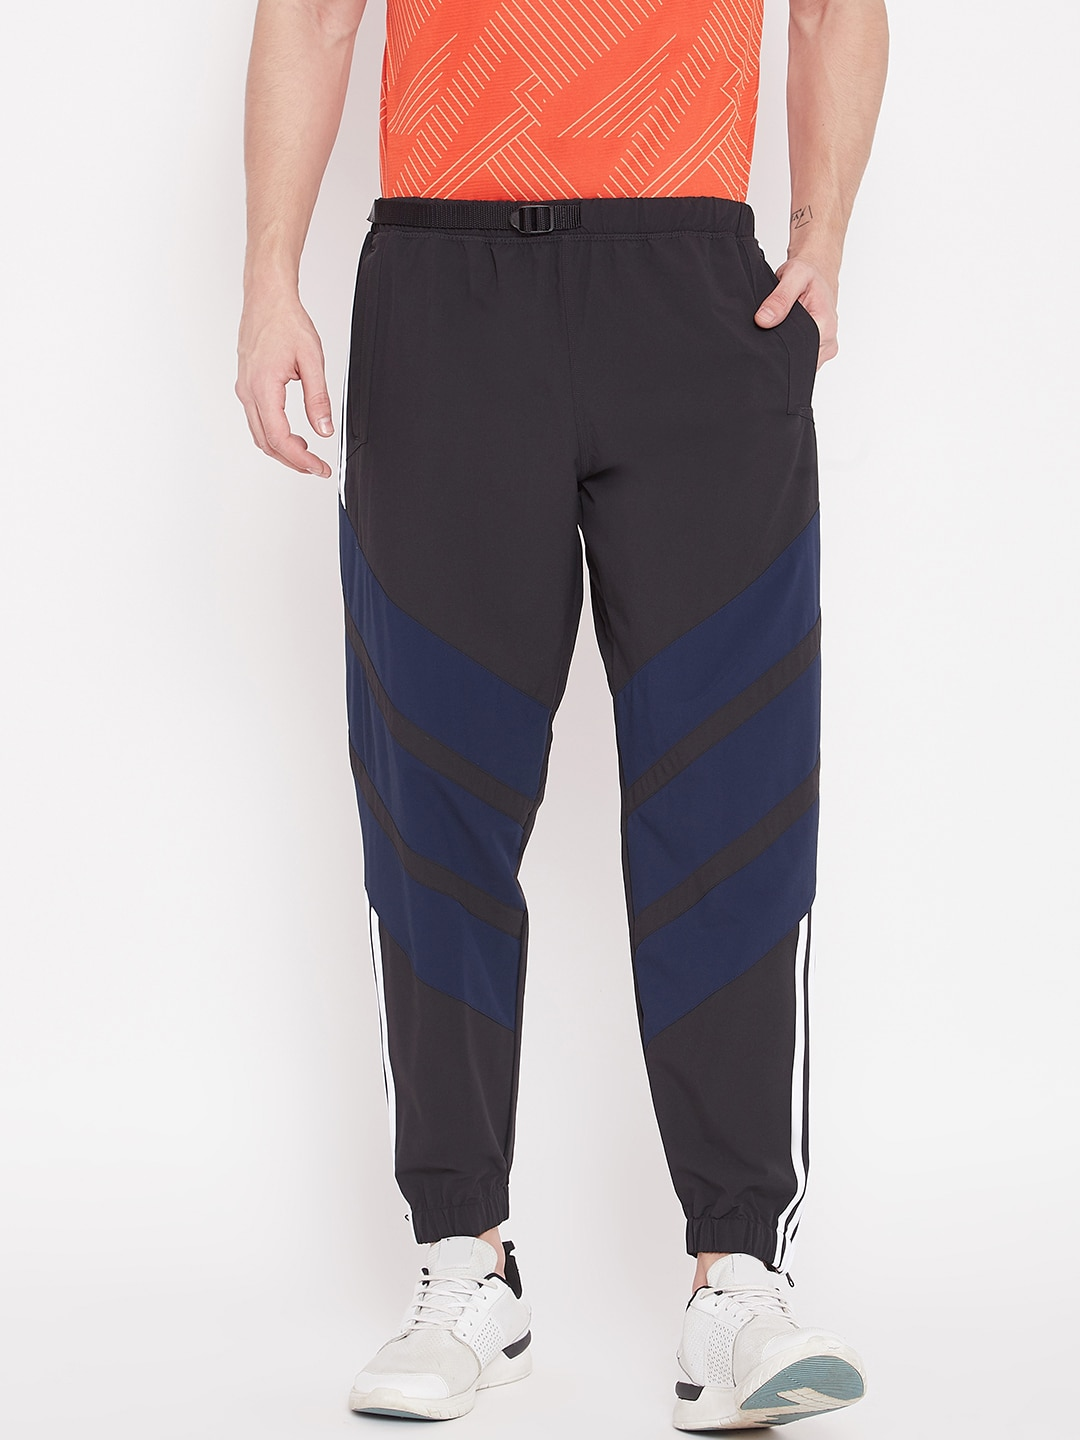 4d803a0f8 Adidas Track Pants Pants Caps 3 Lipstick Heels - Buy Adidas Track Pants  Pants Caps 3 Lipstick Heels online in India